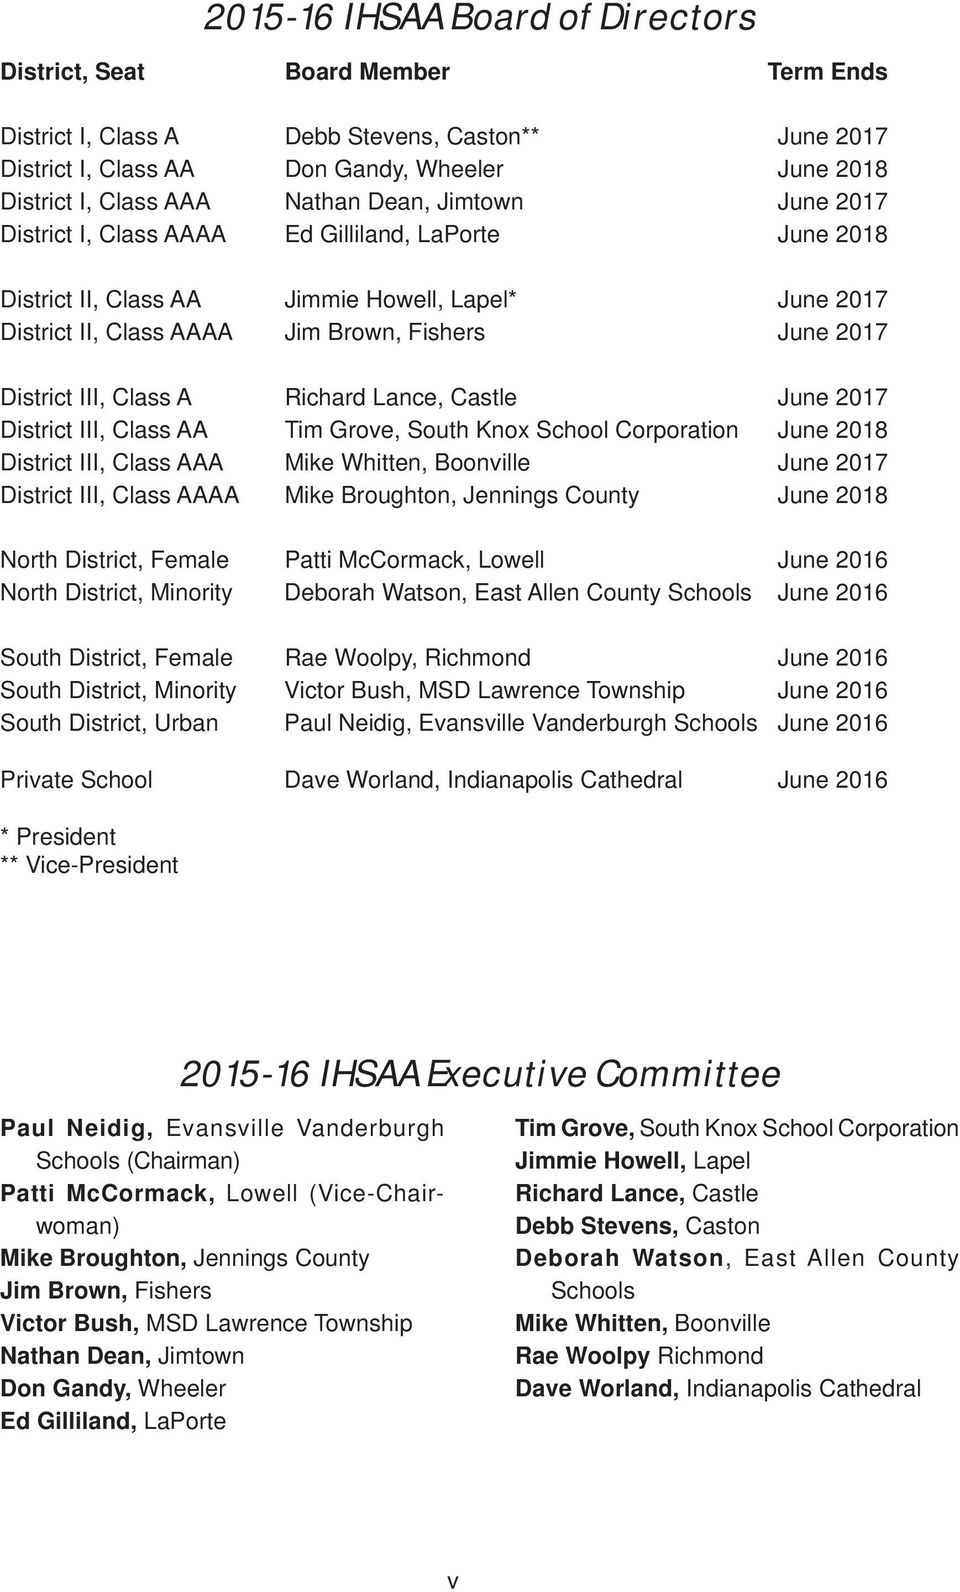 District III, Class A Richard Lance, Castle June 2017 District III, Class AA Tim Grove, South Knox School Corporation June 2018 District III, Class AAA Mike Whitten, Boonville June 2017 District III,